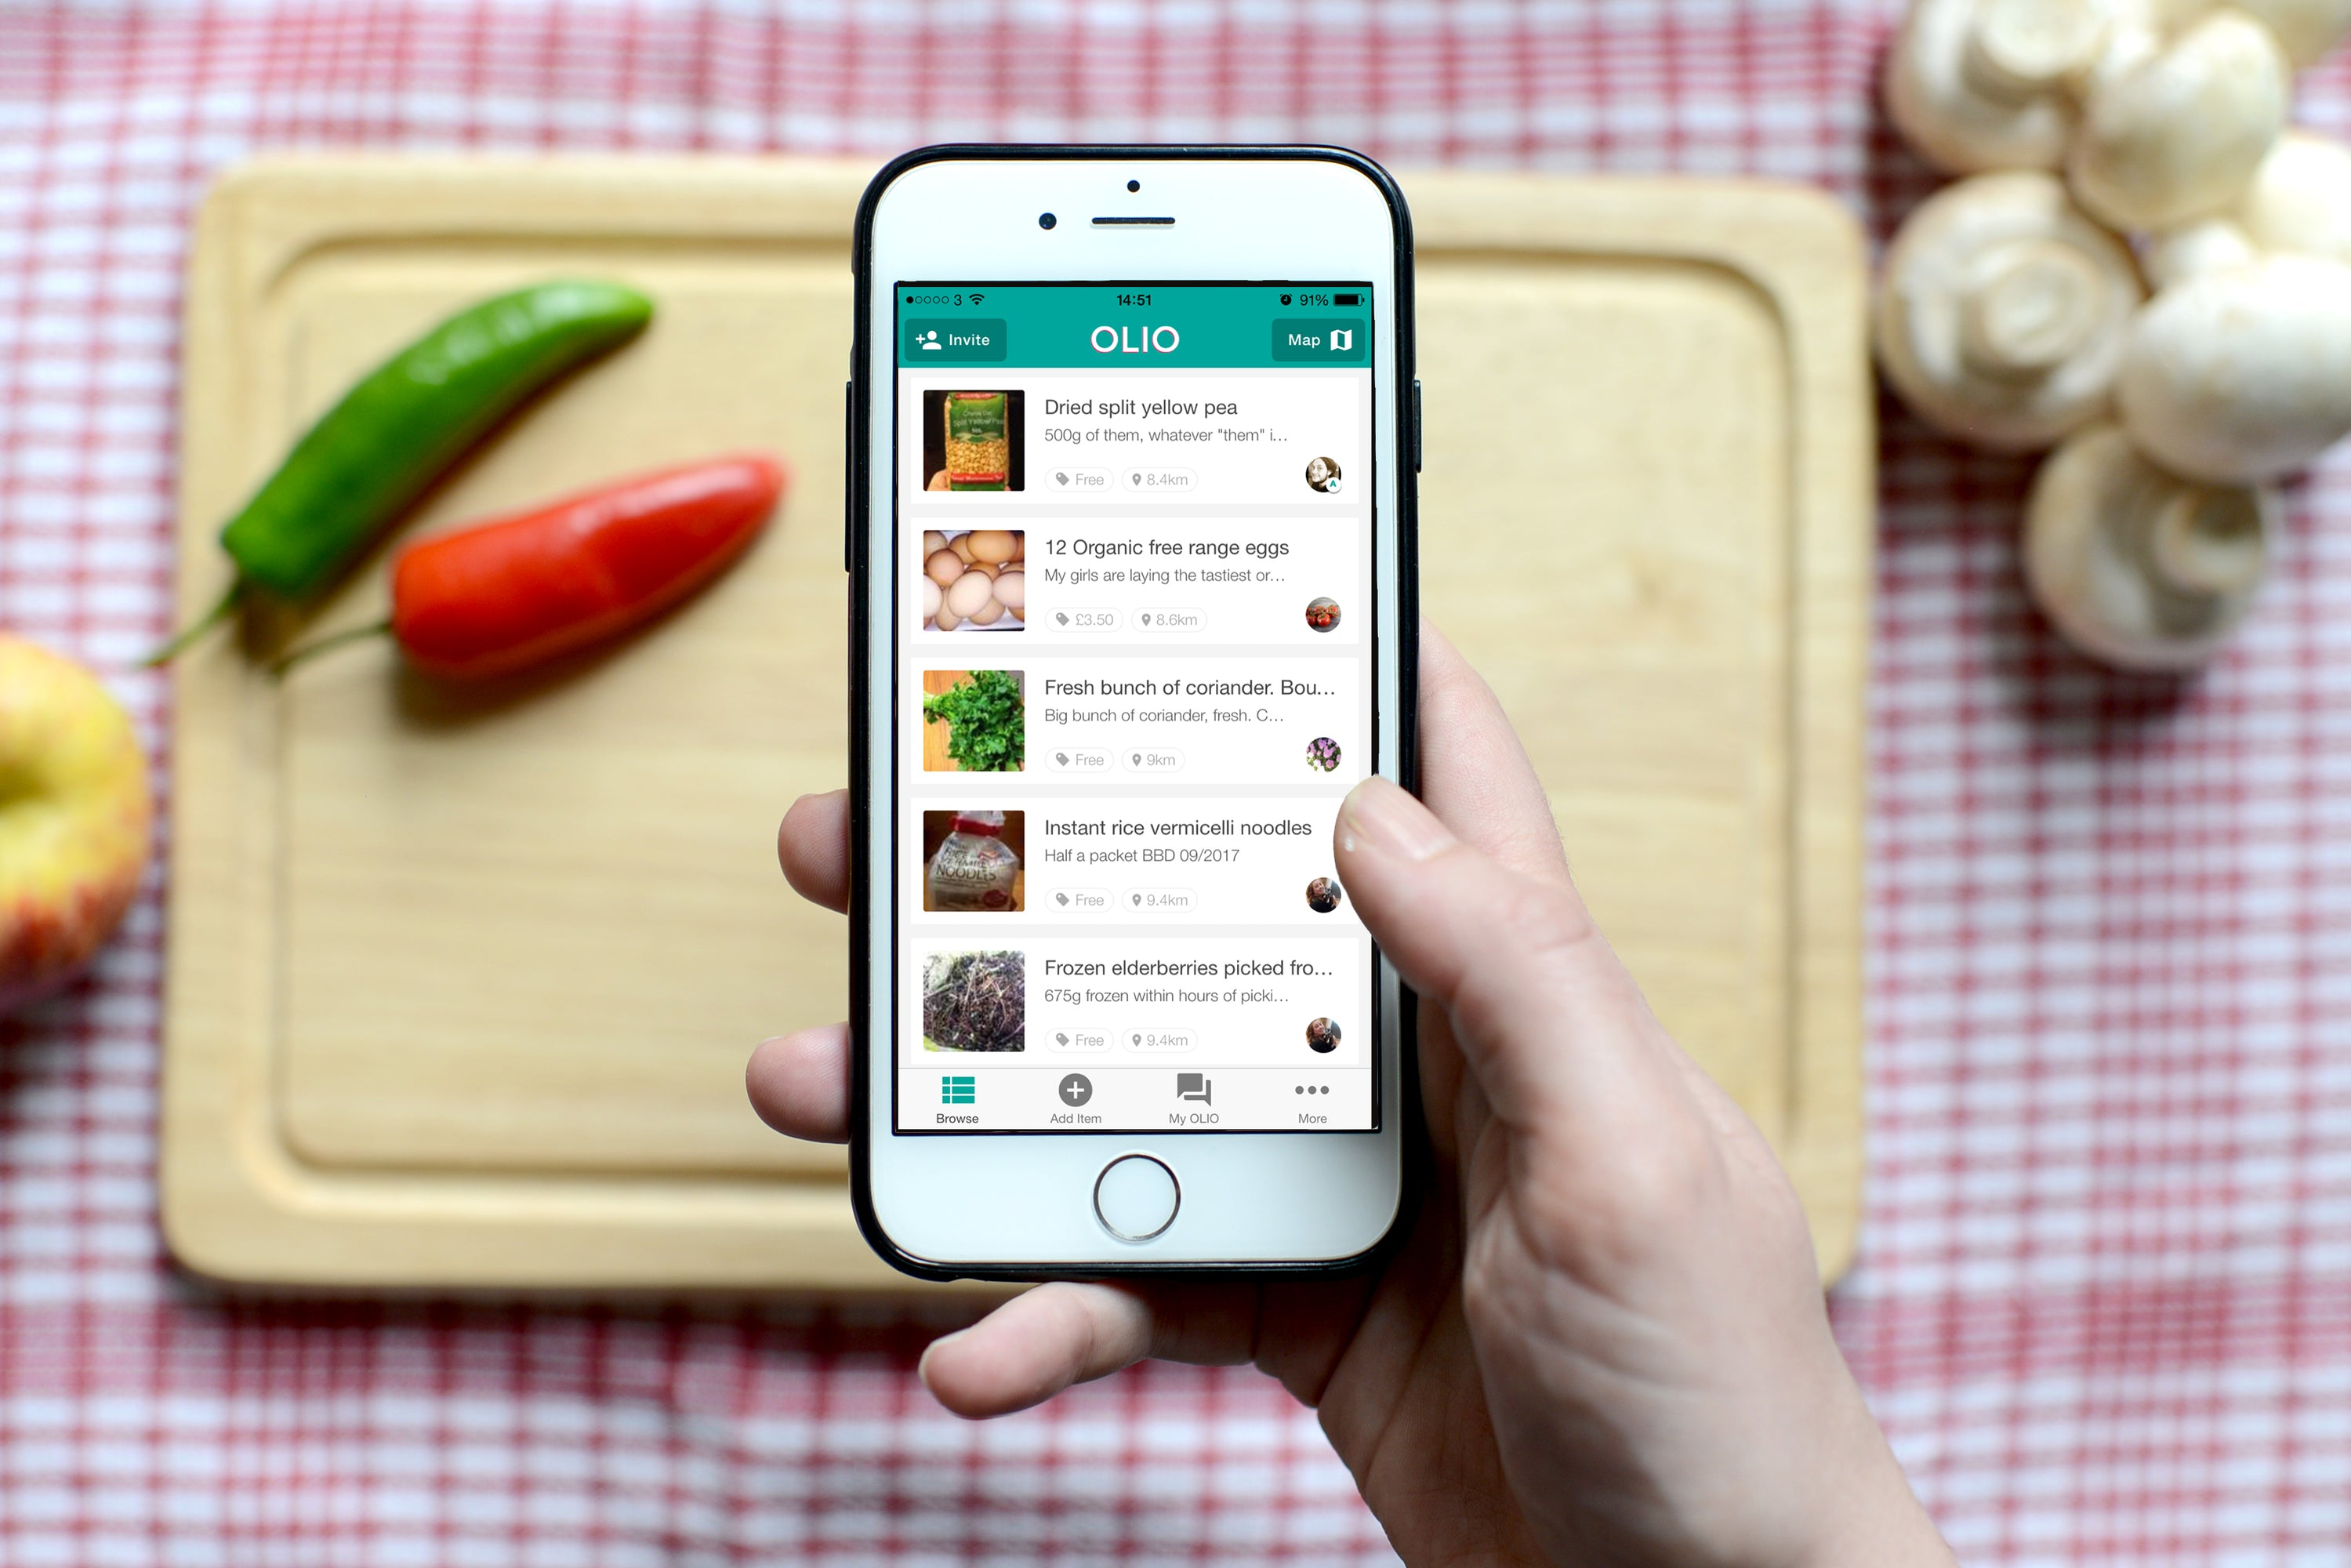 6 Great Apps to Reduce Food Waste